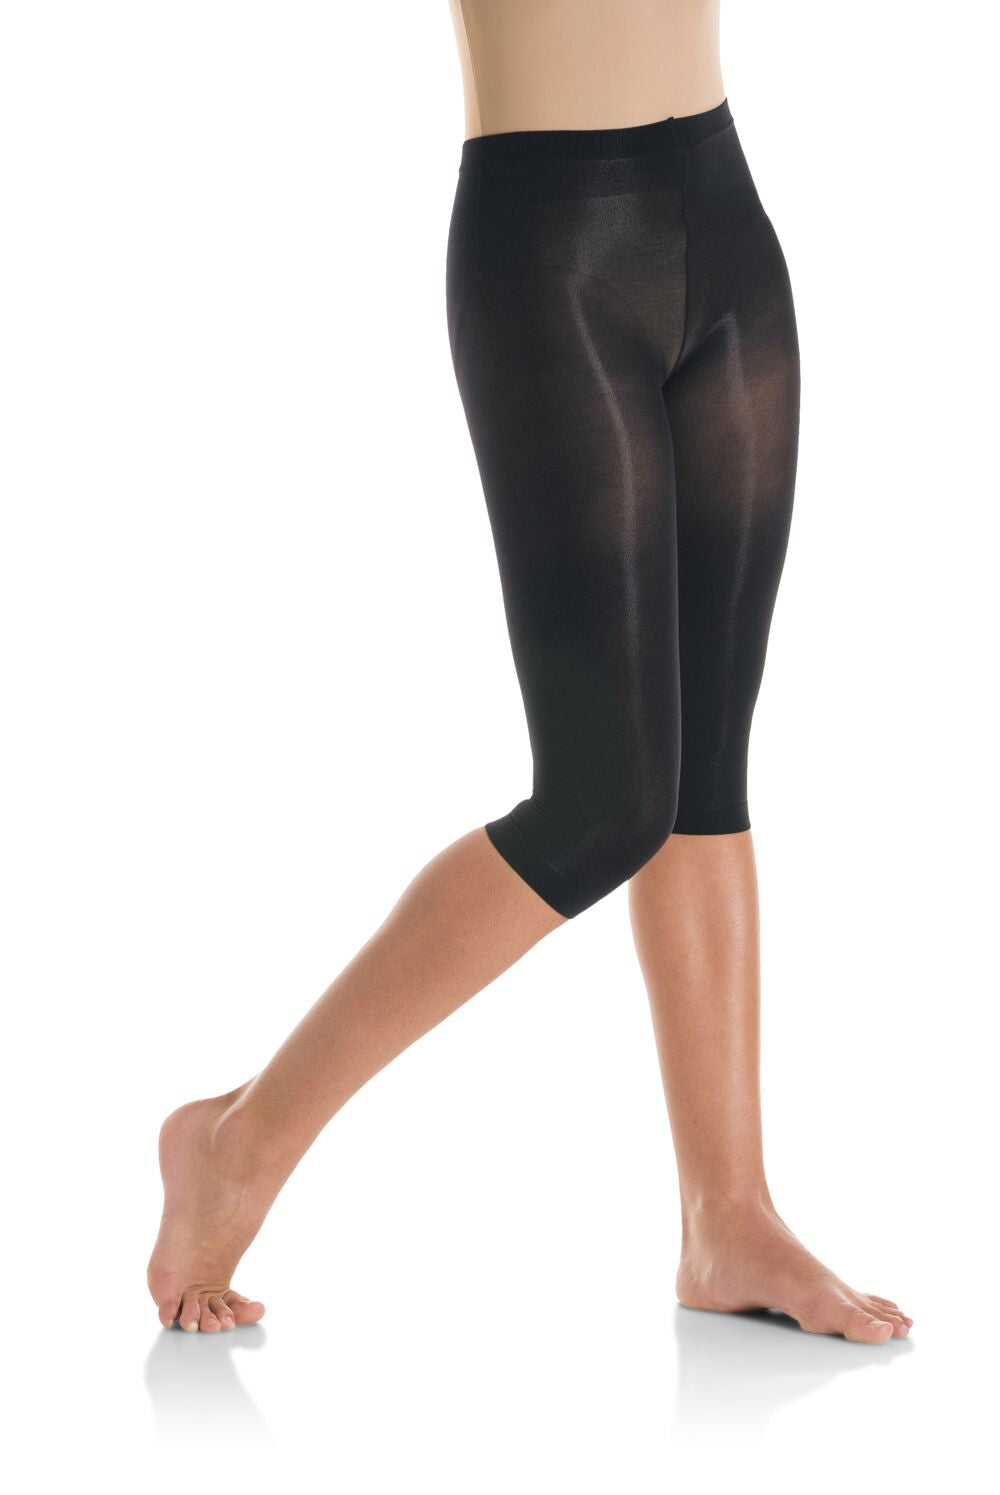 Mondor Capri-Length Tights